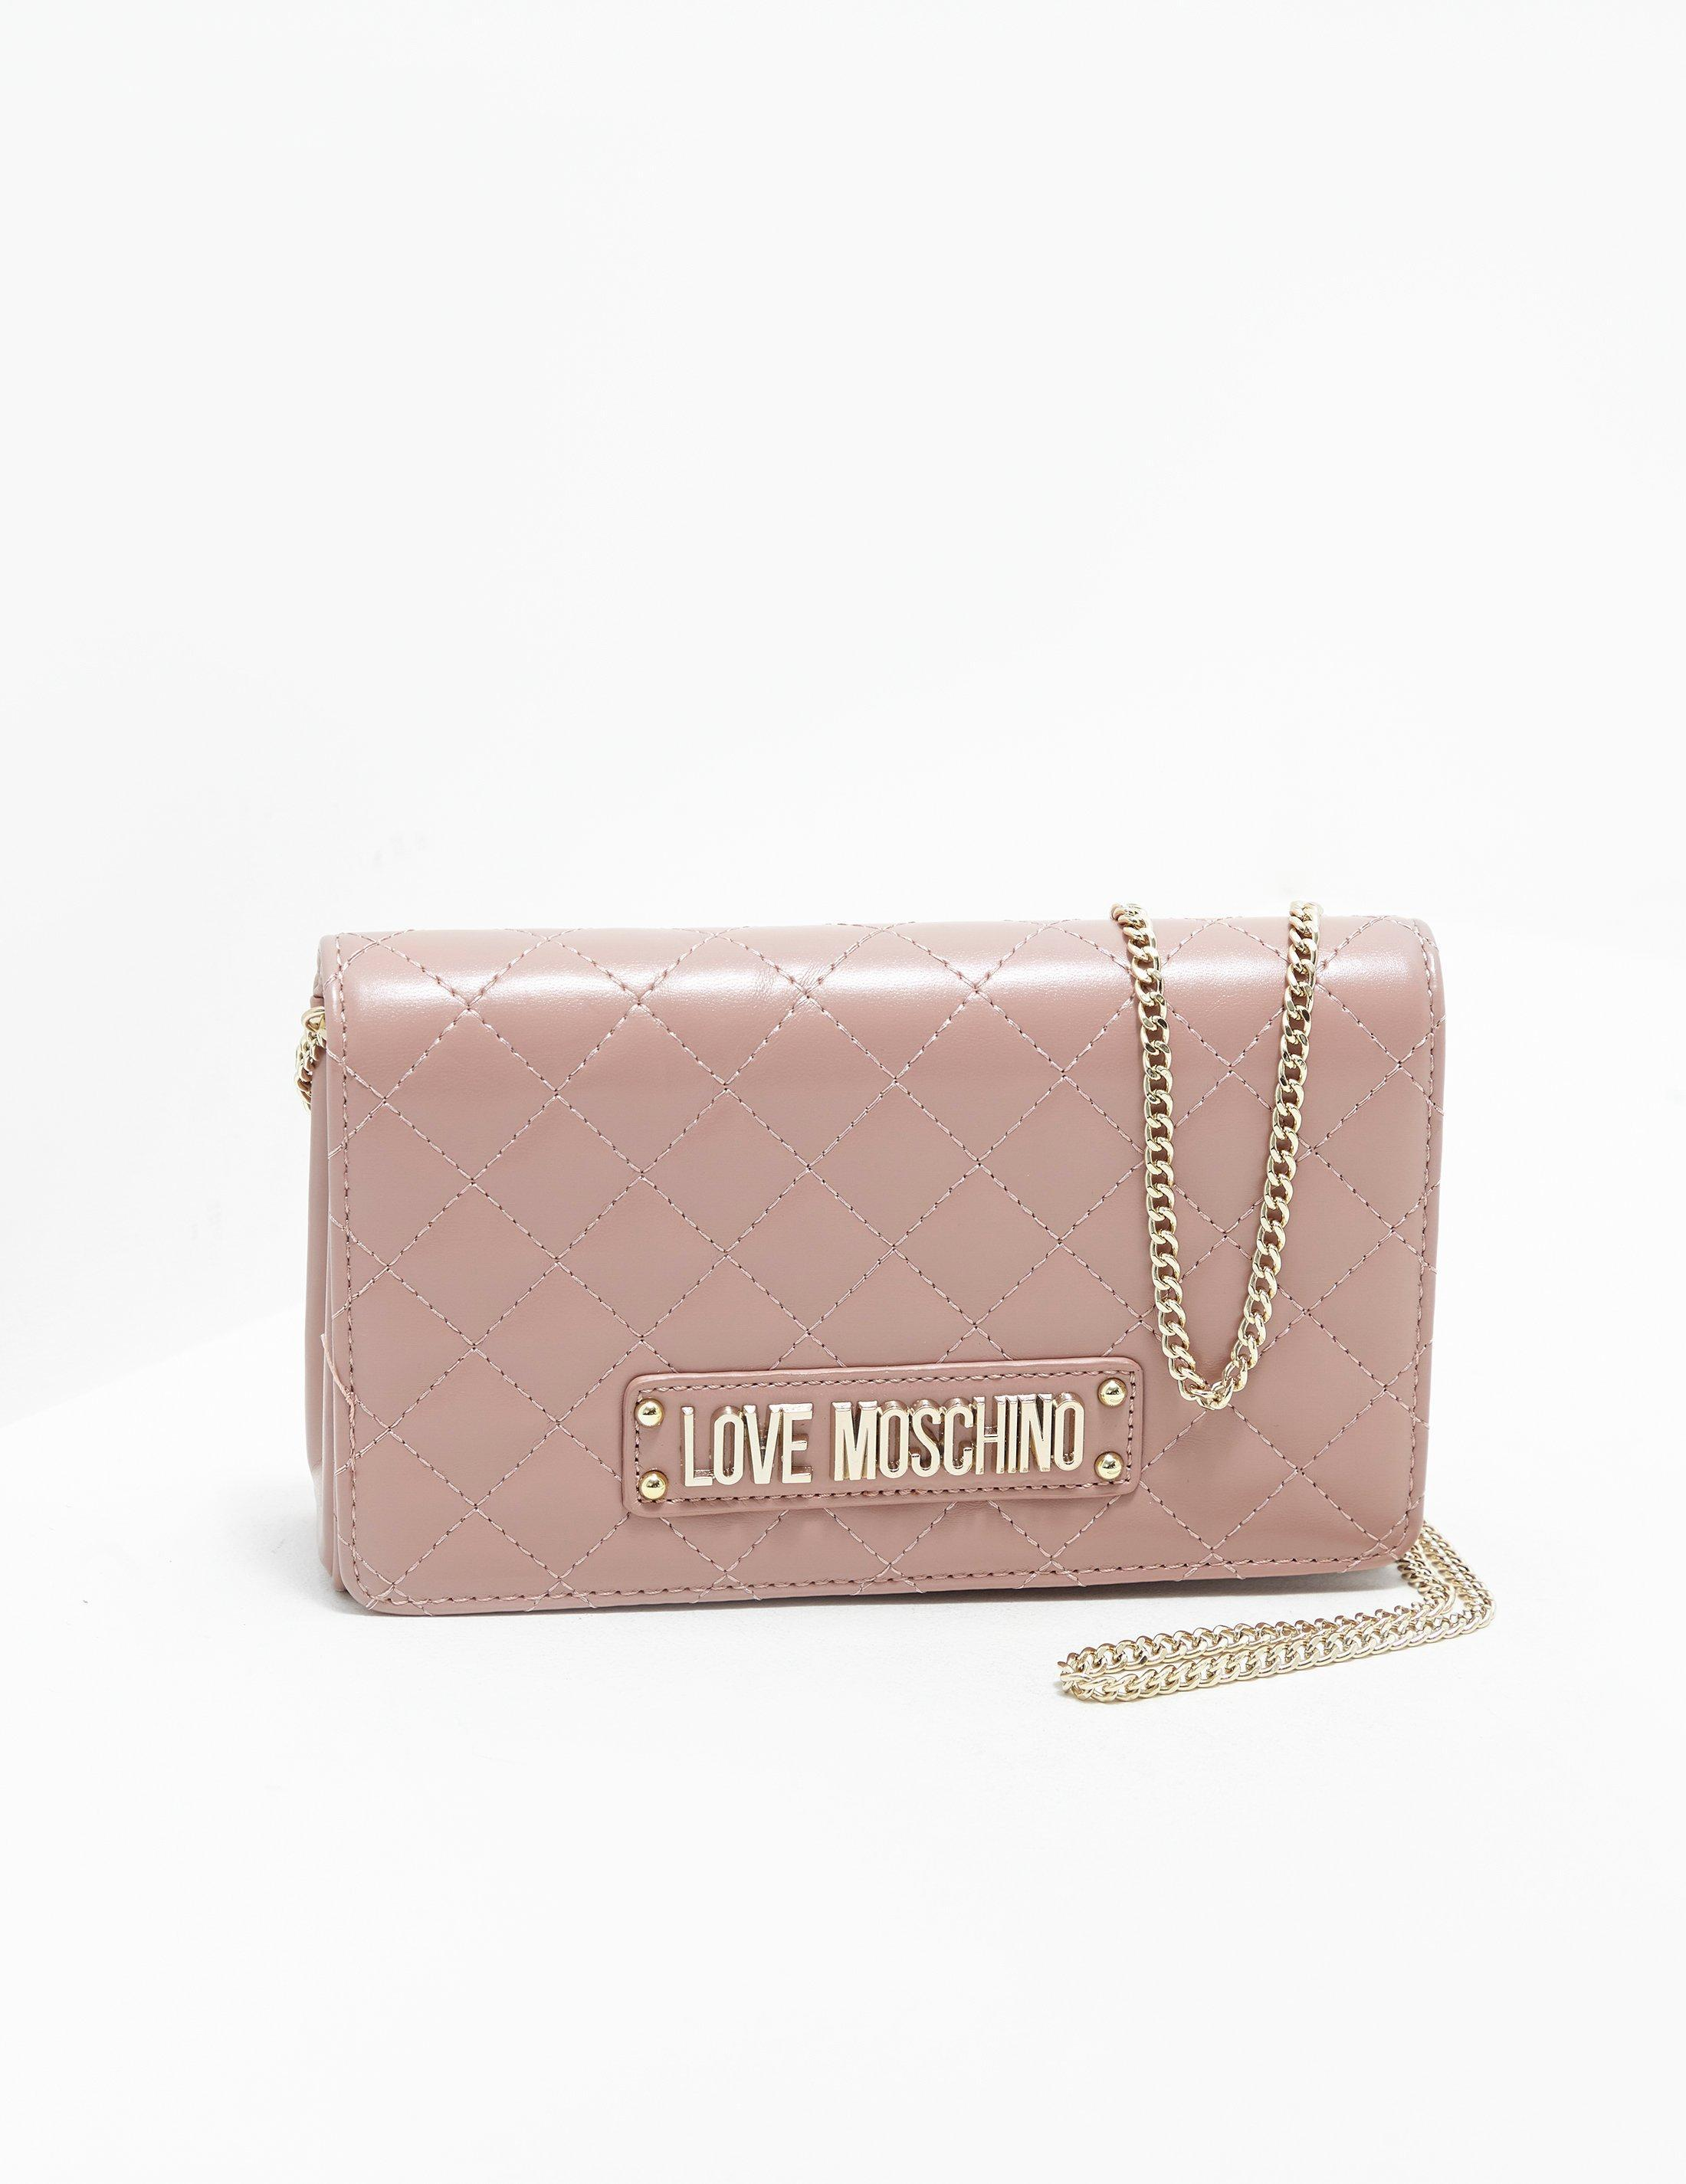 01e69cfe2596 Love Moschino Womens Quilted Chain Shoulder Bag Pink In Lyst